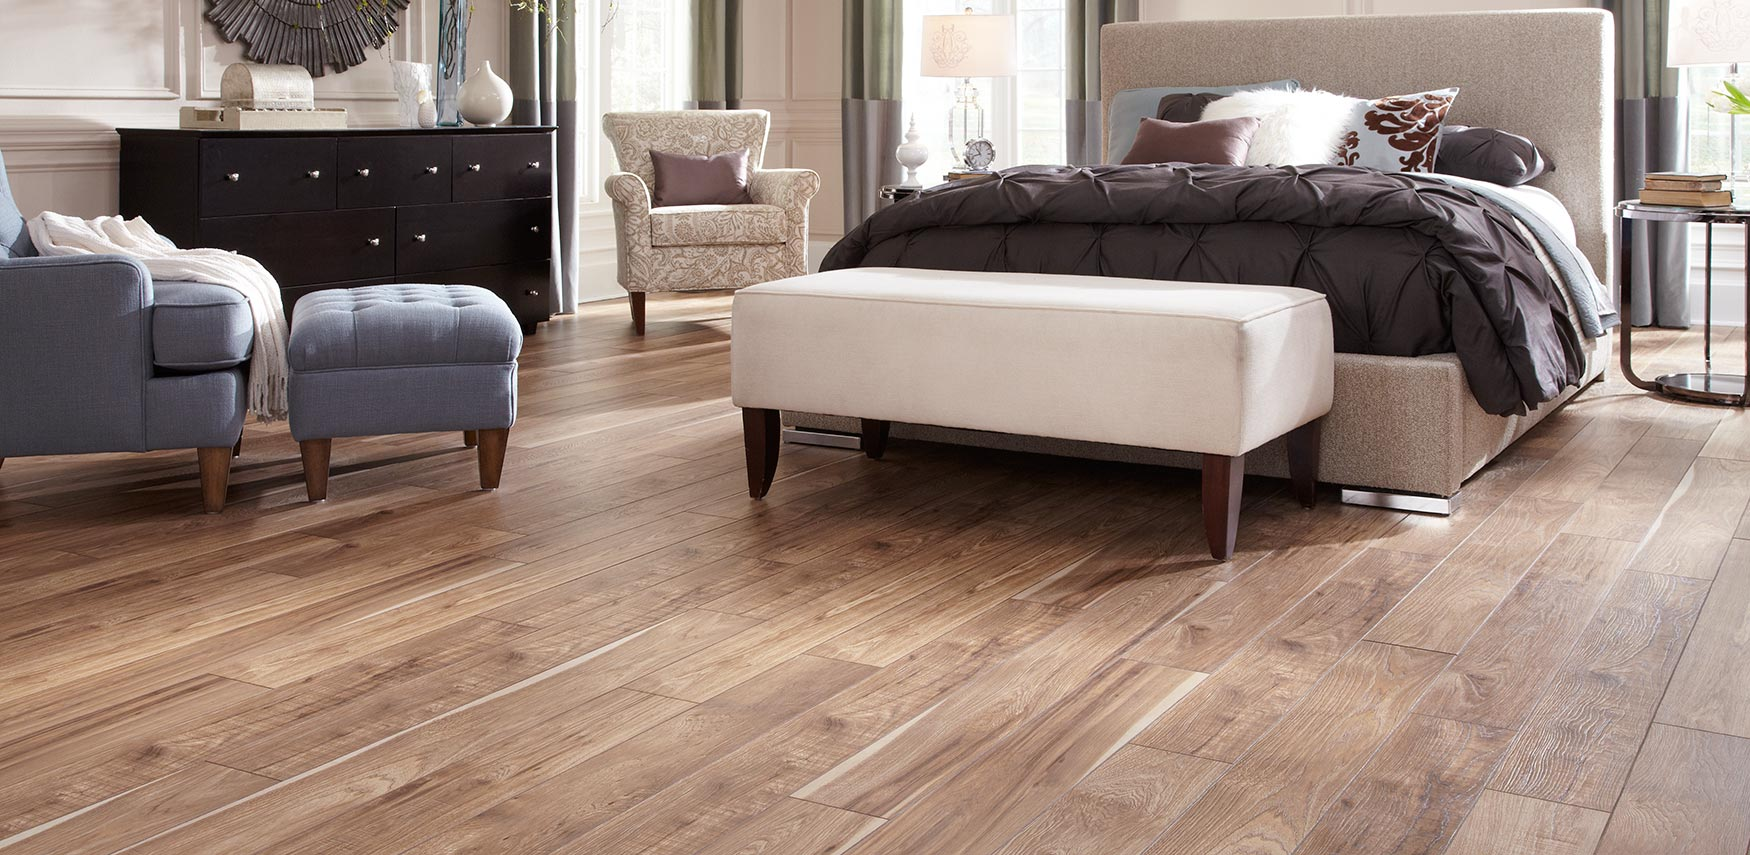 Mannington Laminate Flooring quick view mannington laminate floors restoration chateau sunset 22300 Laminate Flooring